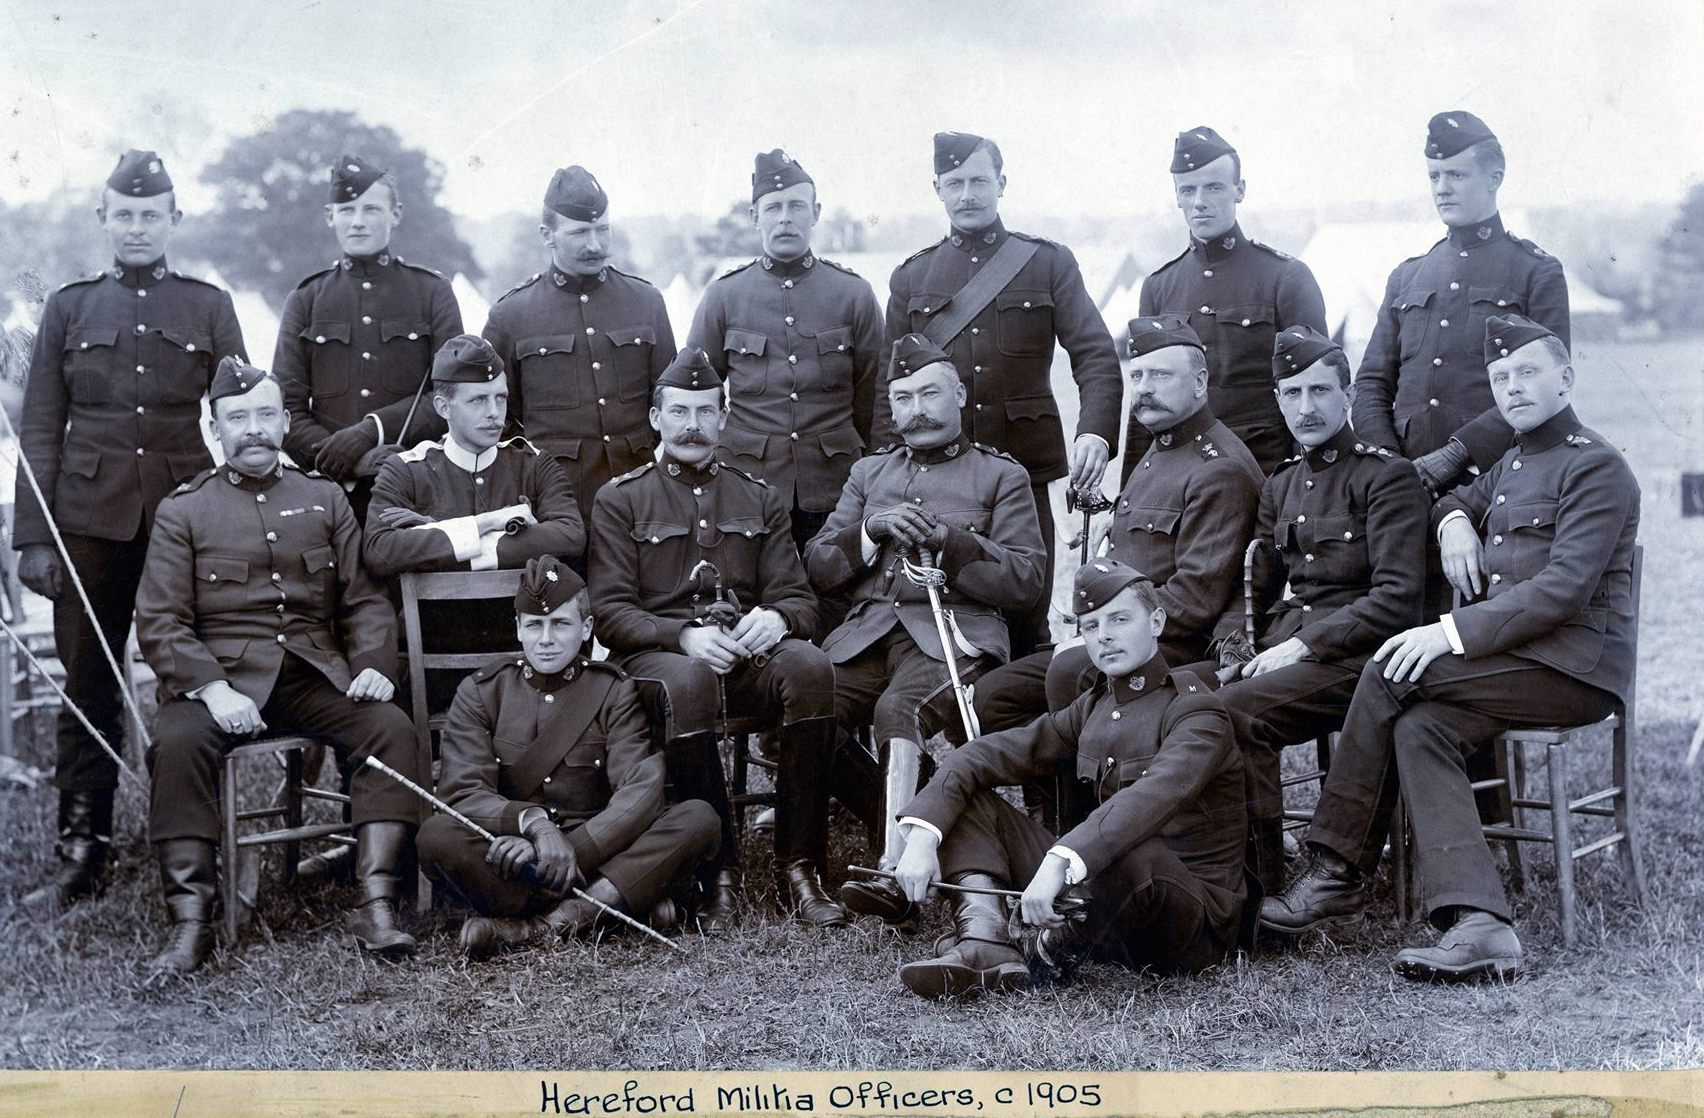 Oliver is sat next to Col. Symonds-Taylor of the Kings Shropshire Light Infantry